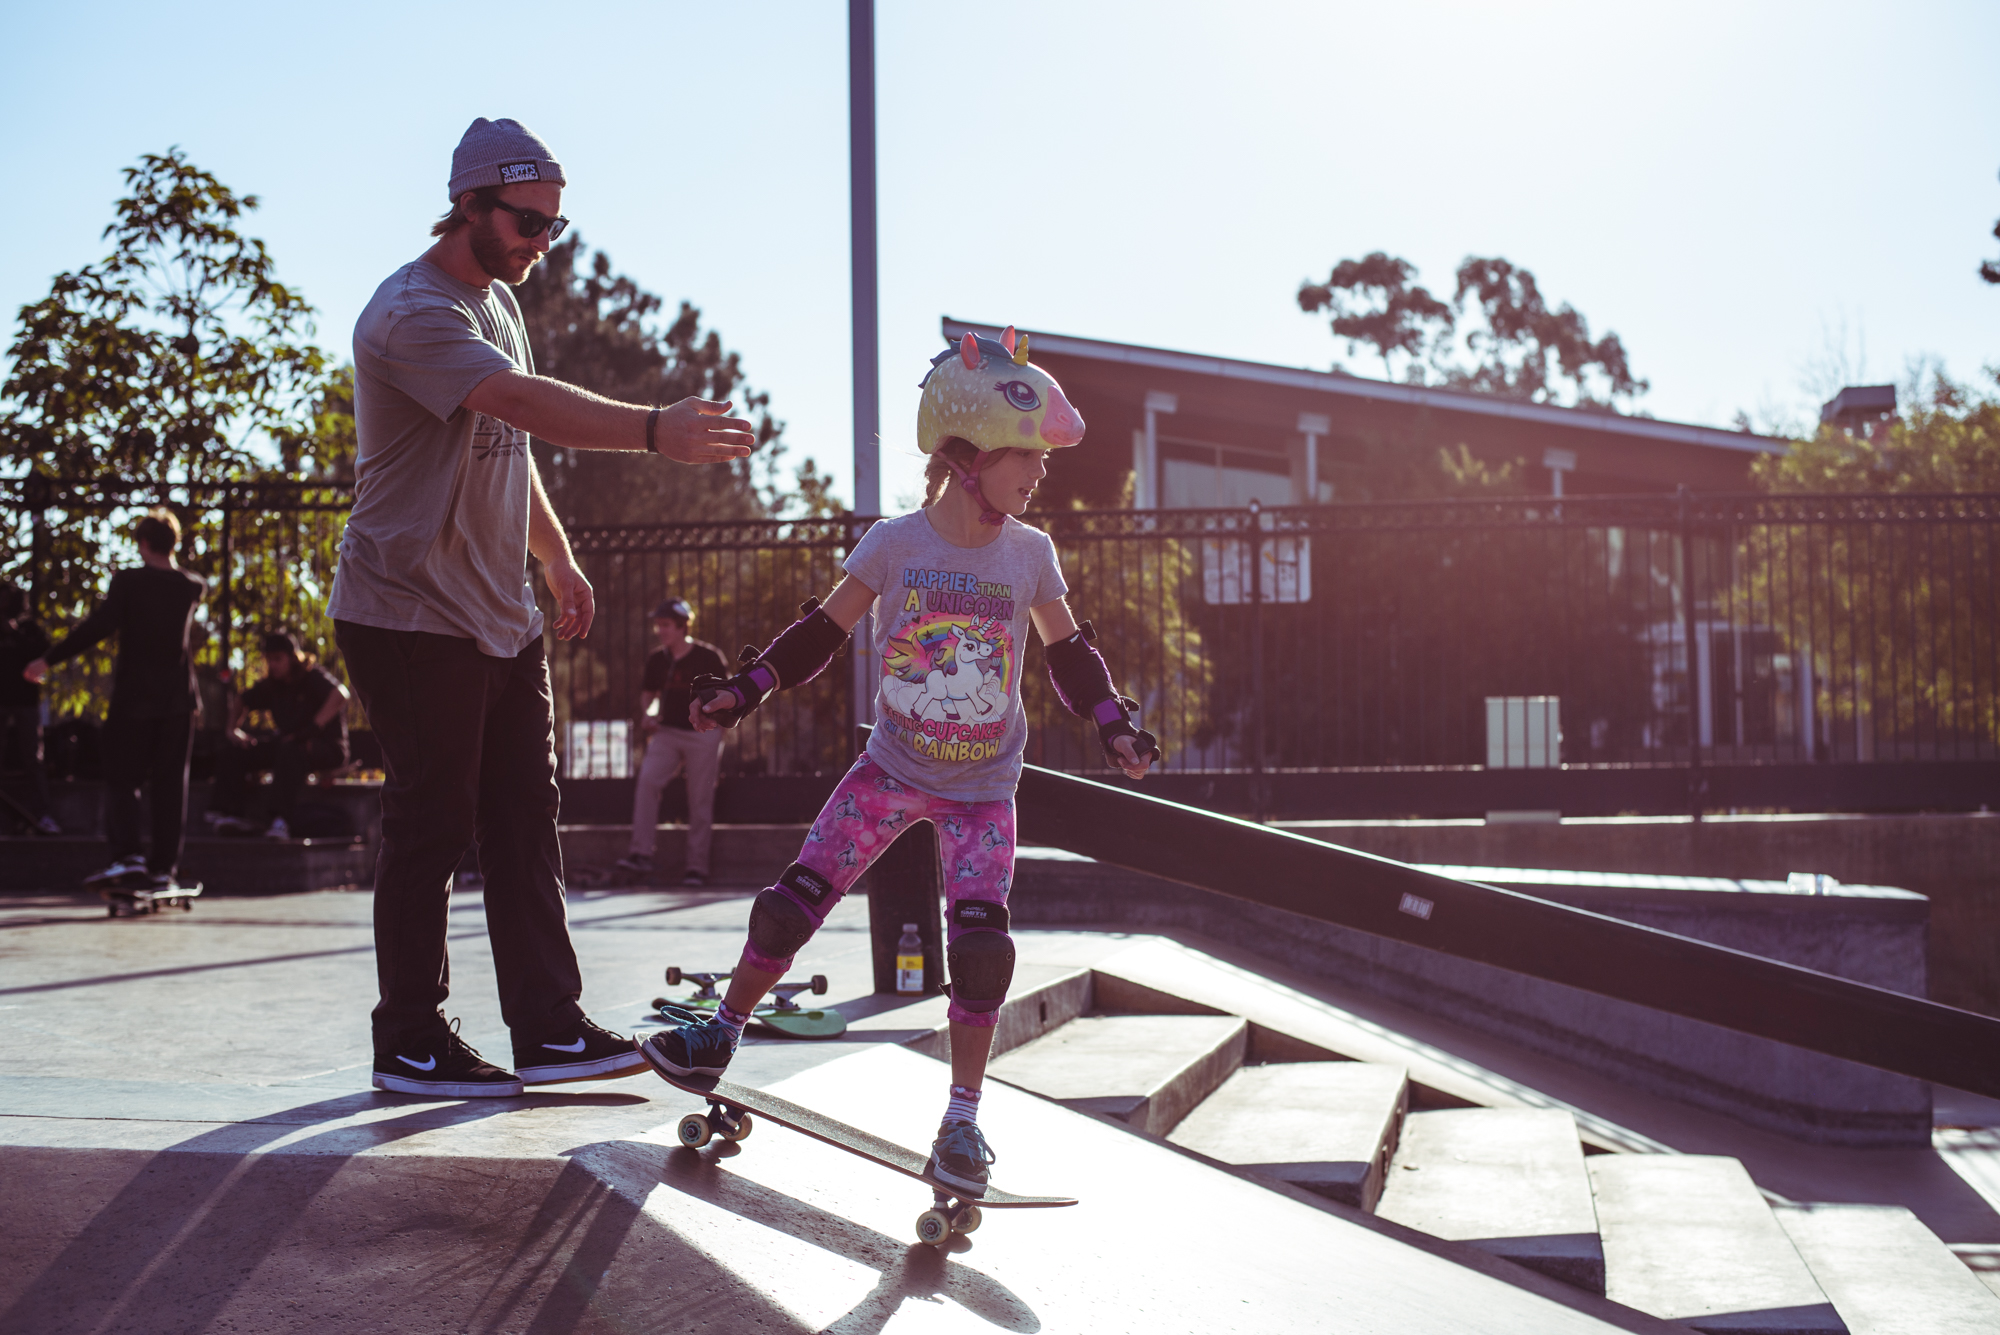 Skateboard Birthday Party-13.jpg